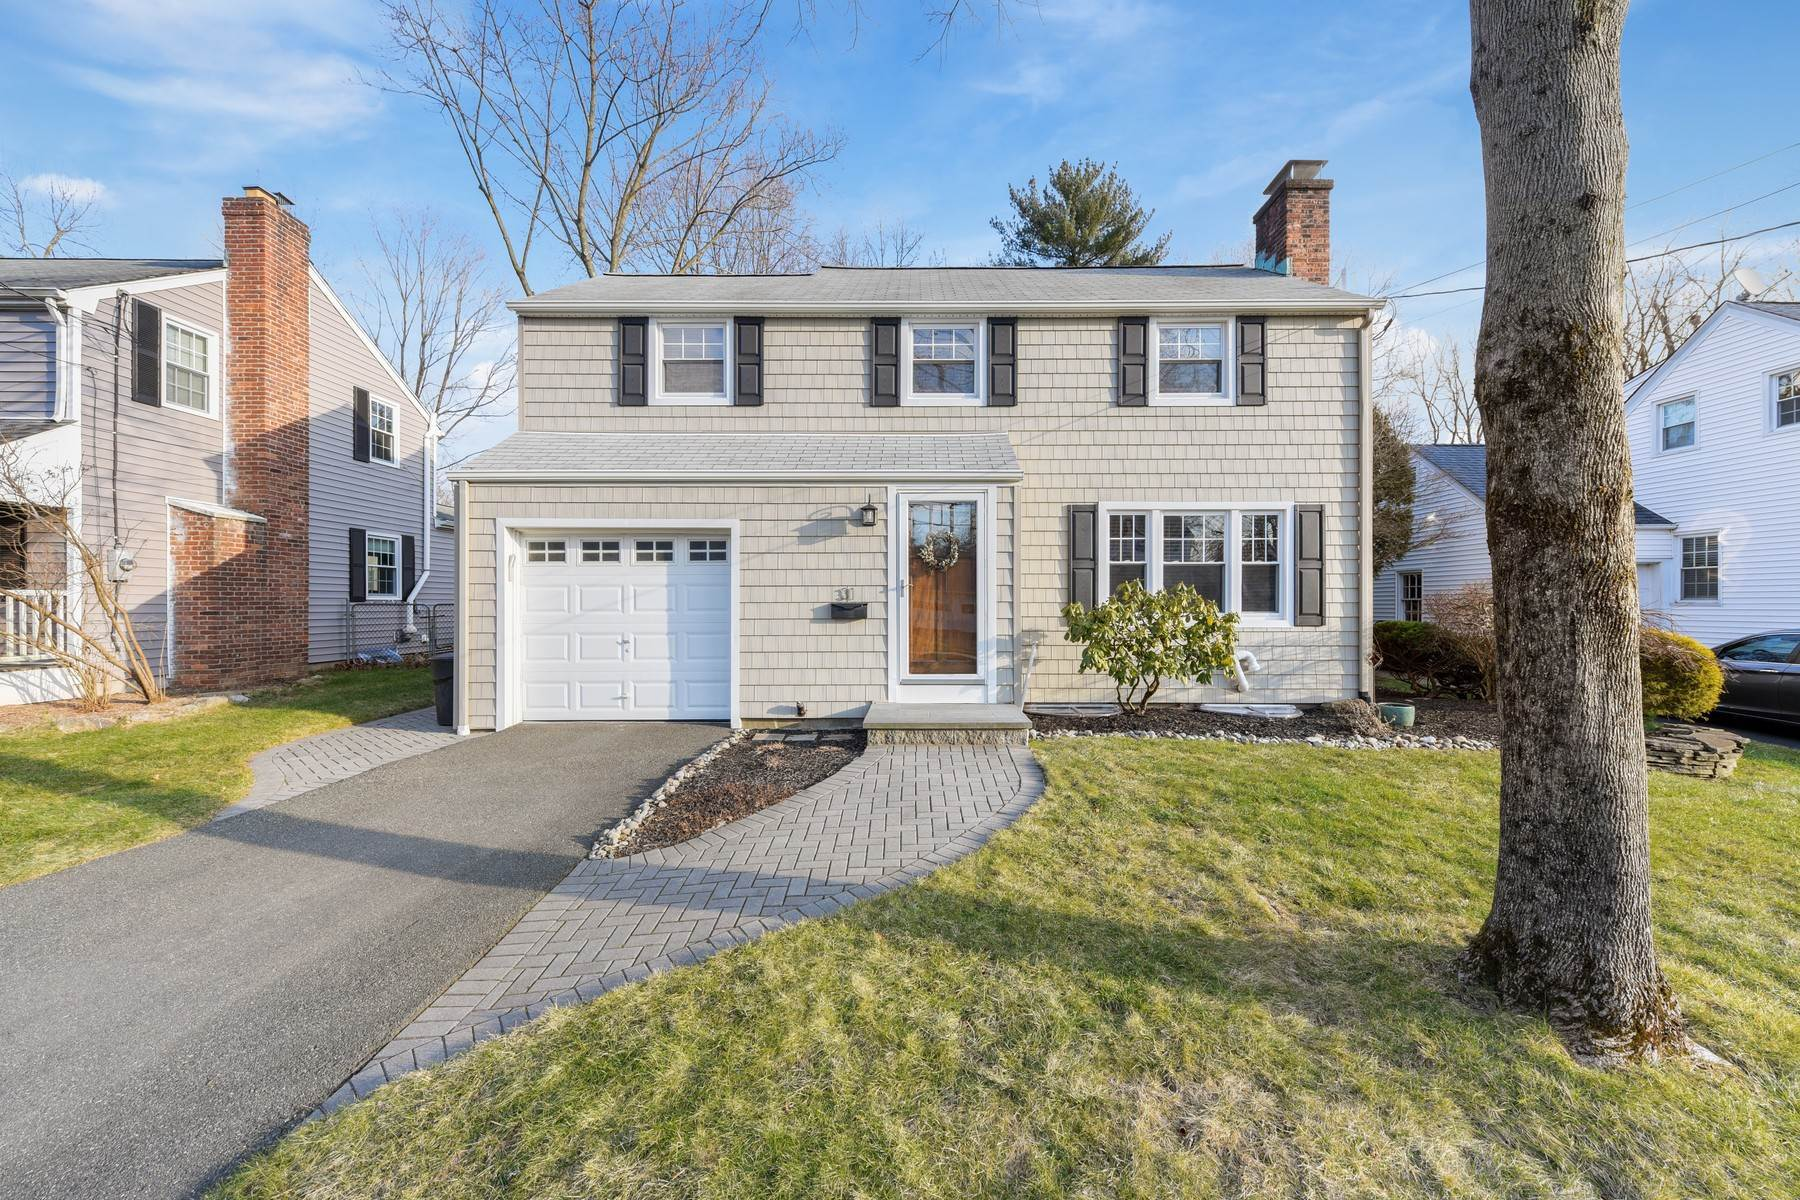 Single Family Homes for Sale at Perfectly Maintained Turn Key Colonial 31 Park Way, Morris Plains, New Jersey 07950 United States